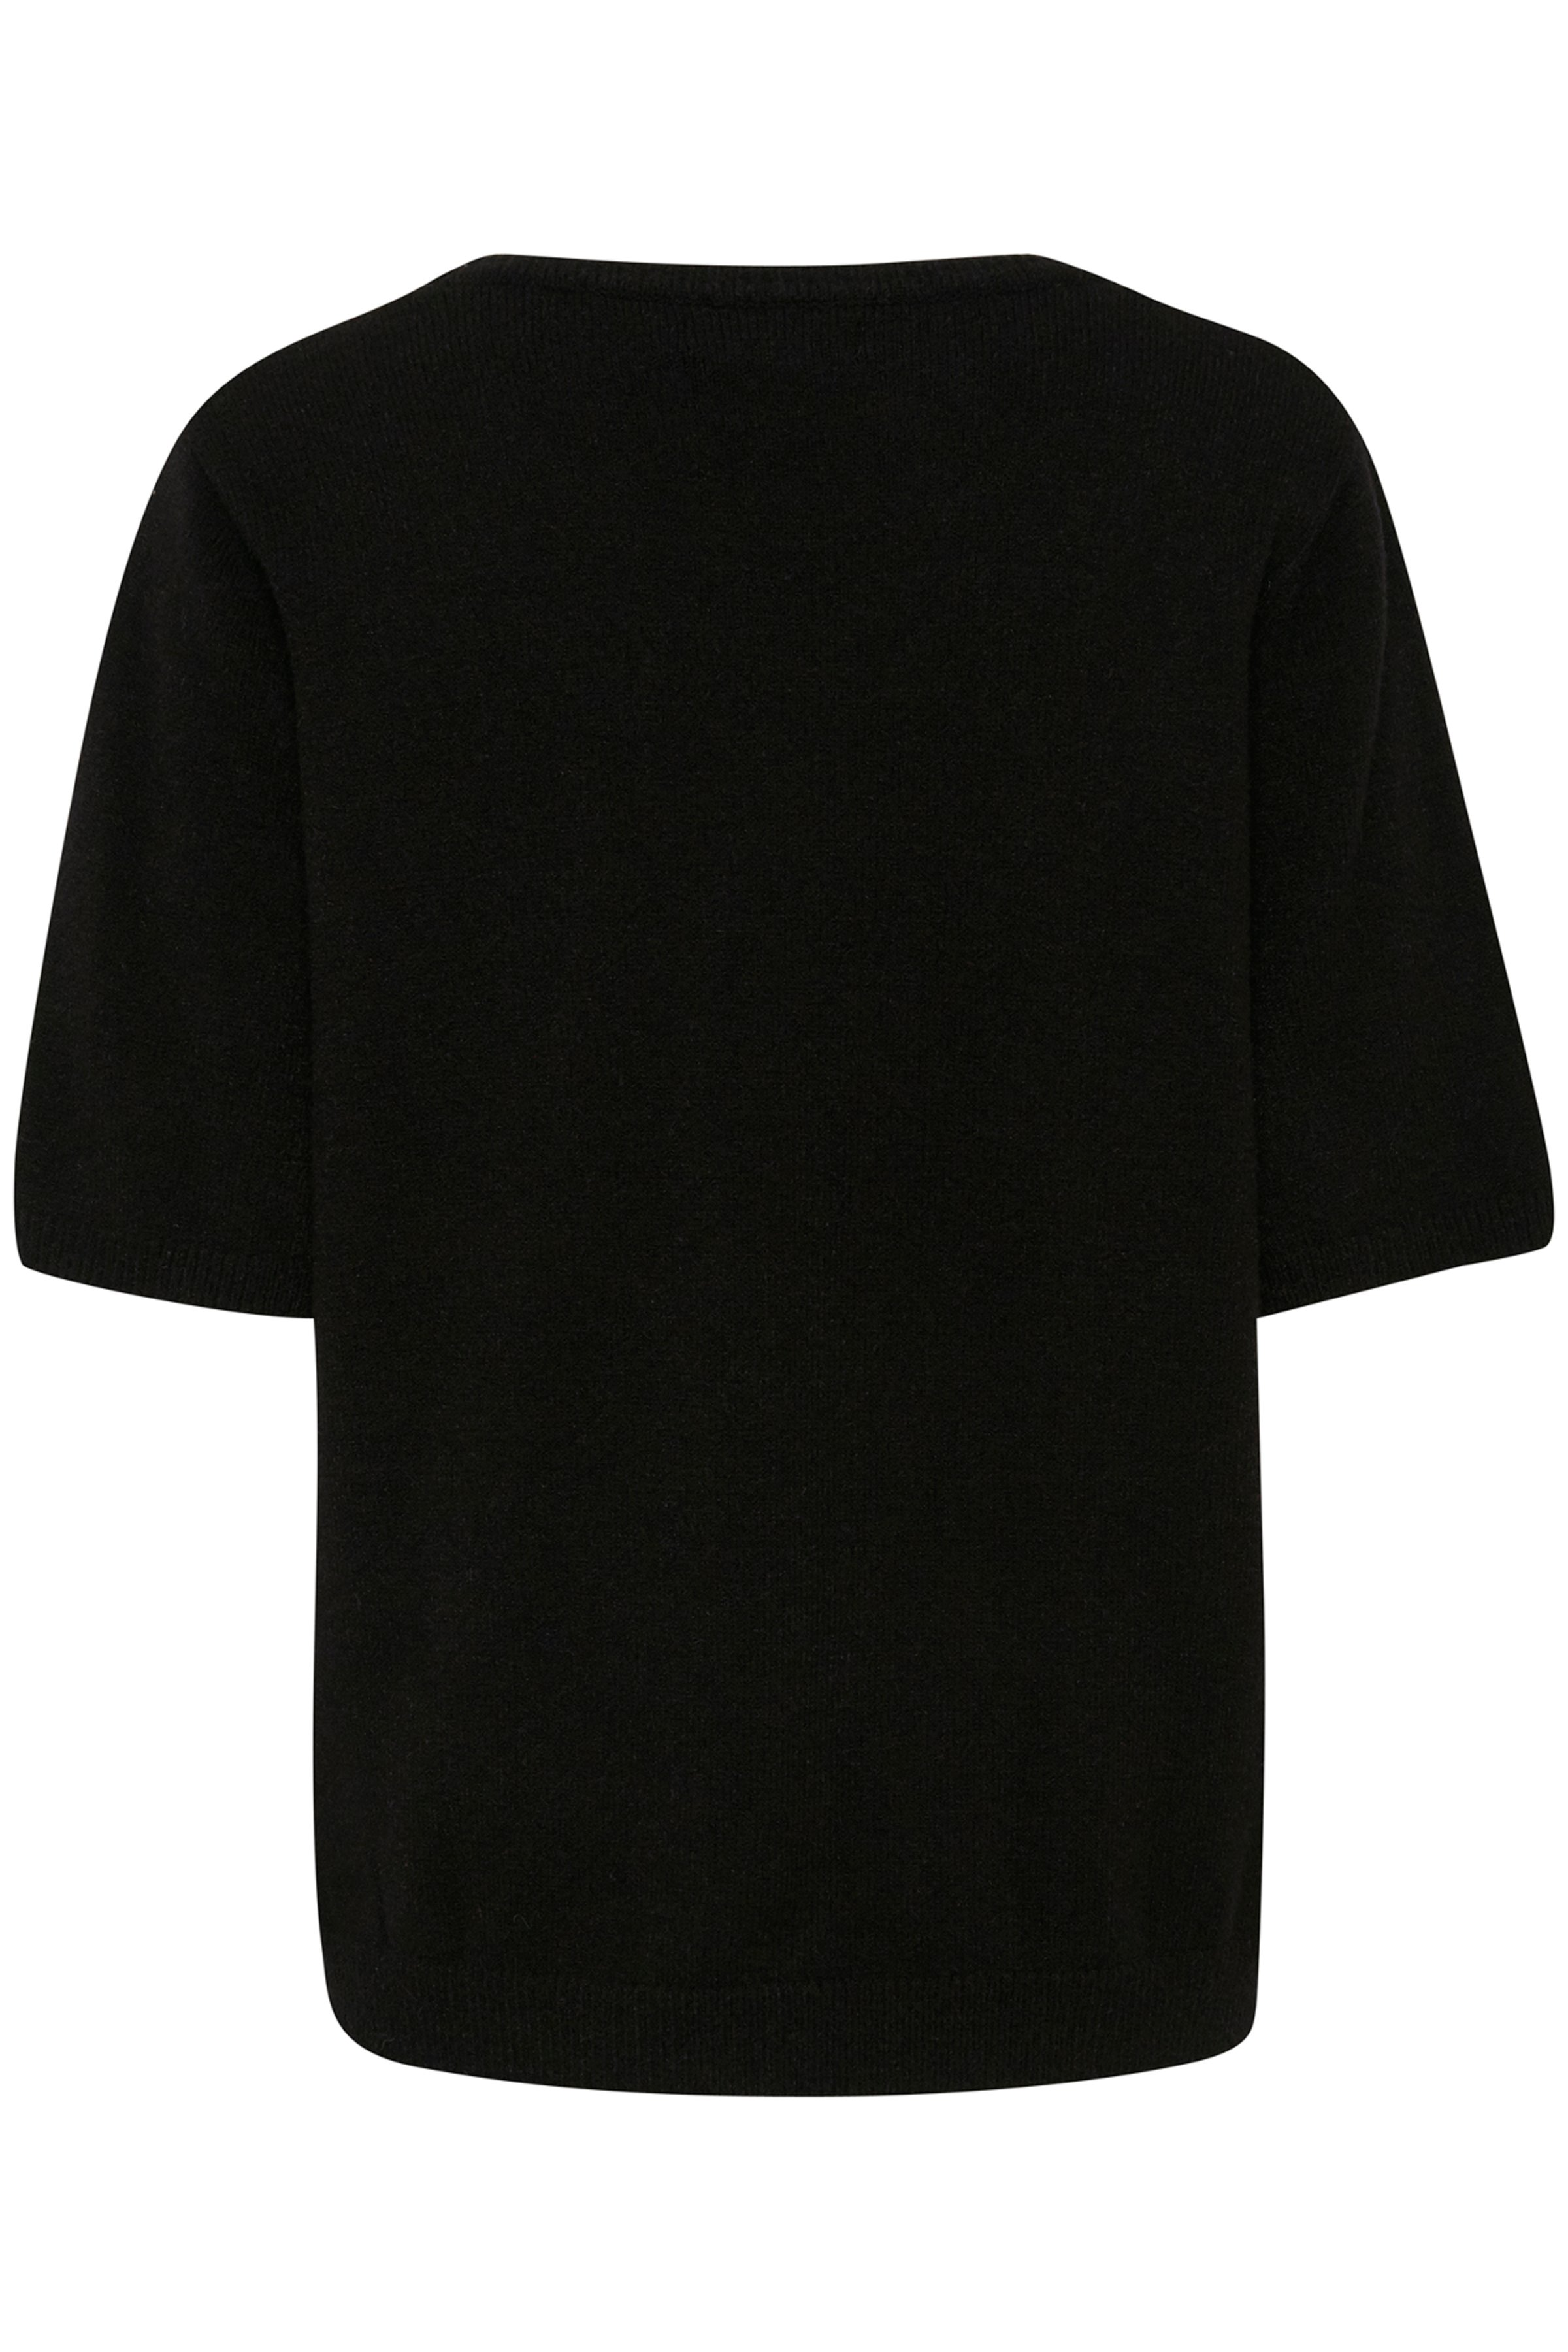 Black T-shirt from b.young – Buy Black T-shirt from size XS-XXL here